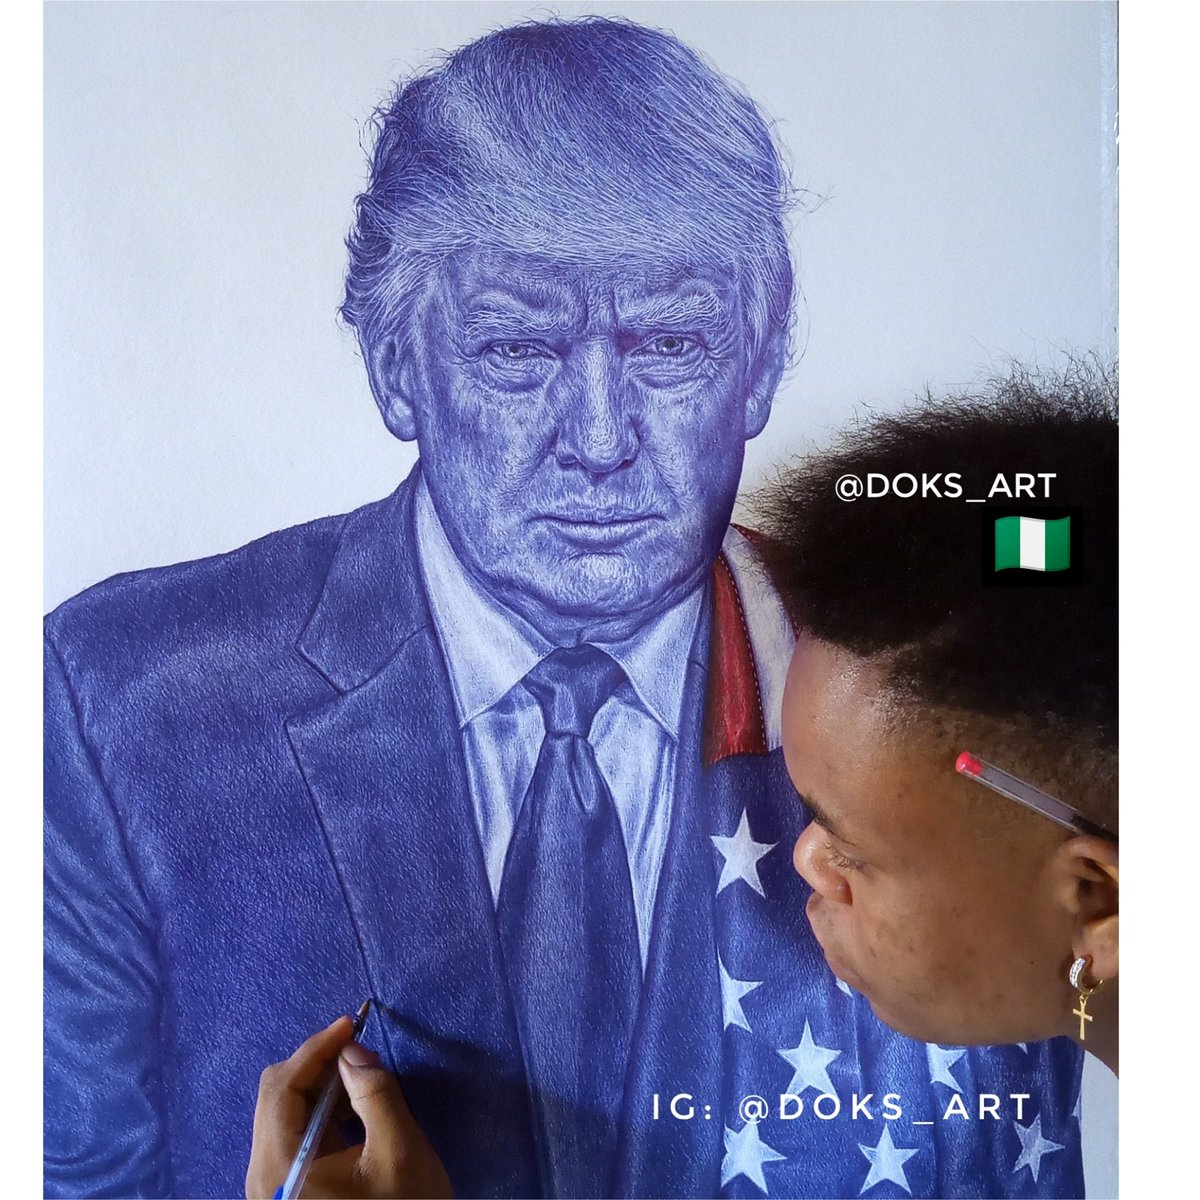 This is my second portrait of President Trump. This time I really want him to see it. All done in ballpoint, took up to 70hours, 24×21 inches. Please RT till the president sees this🙏🏽 @realDonaldTrump @DonaldJTrumpJr @POTUS